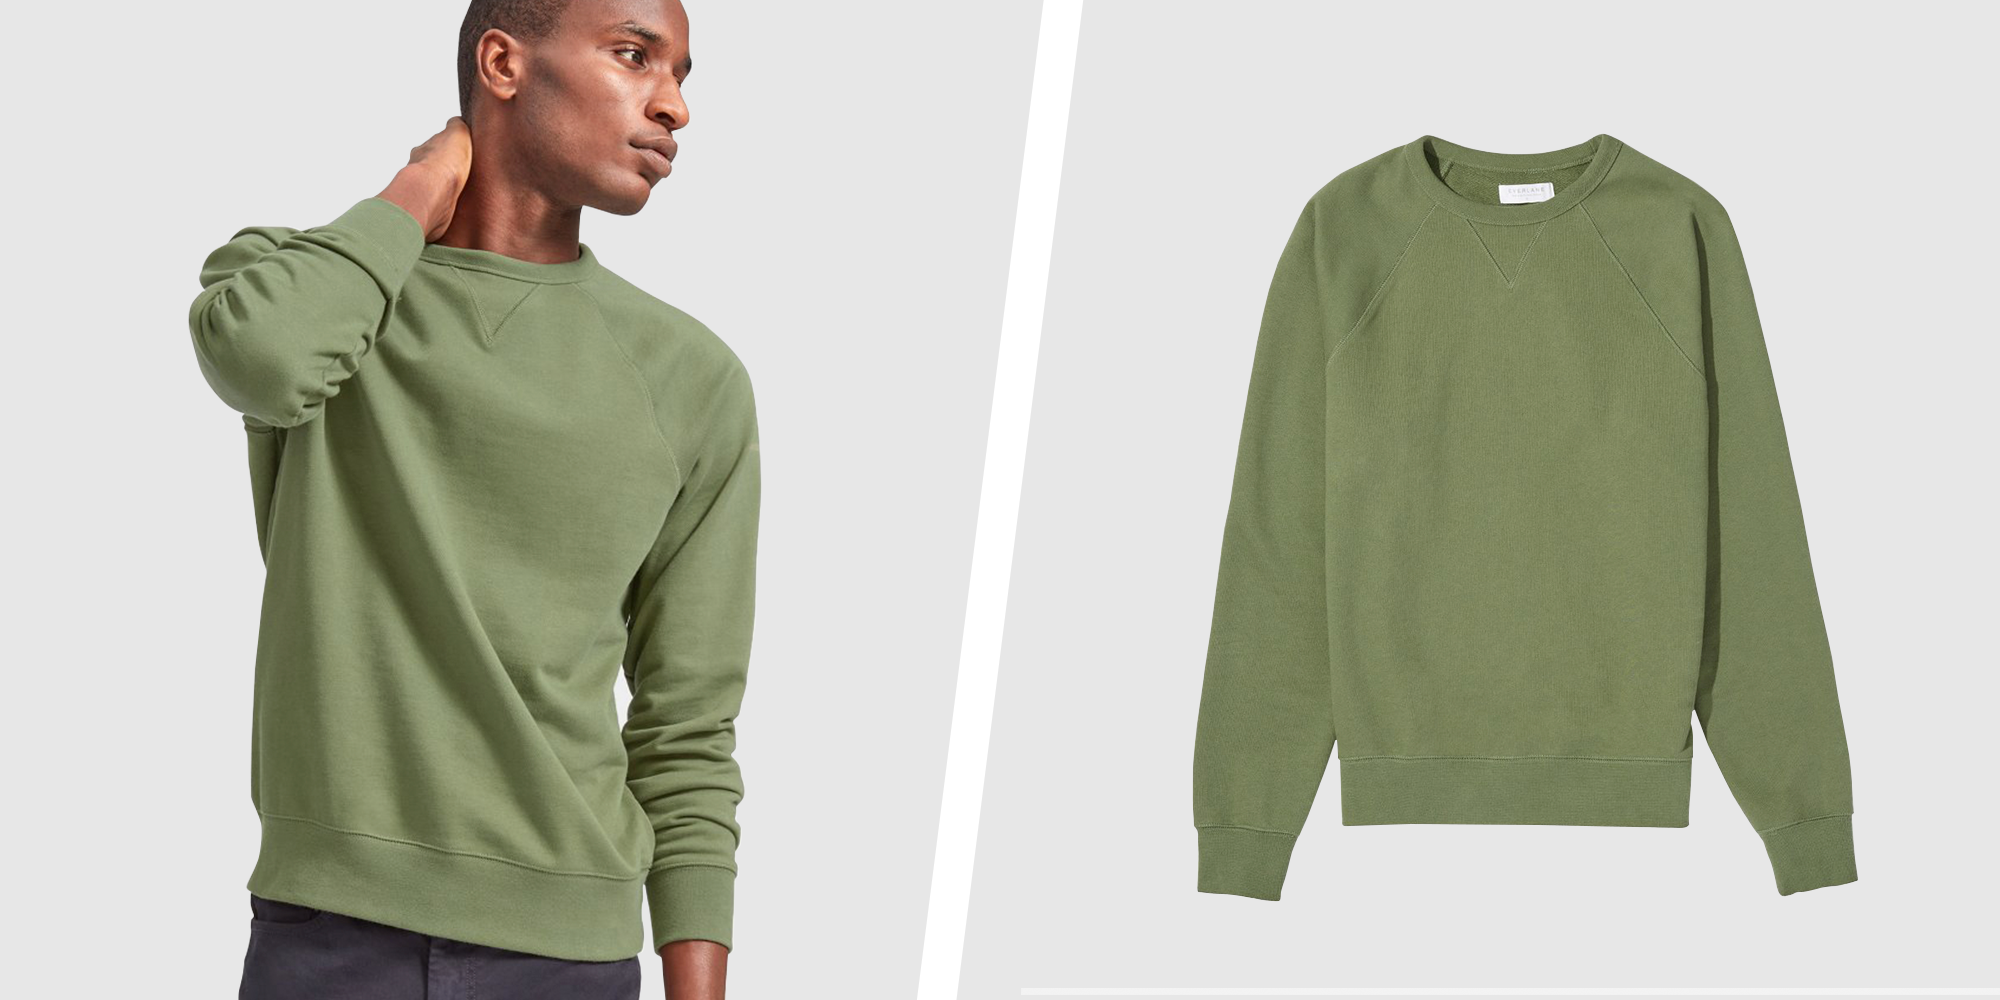 9 Clothing Lines for Guys Who Don't Care About Logos or Labels